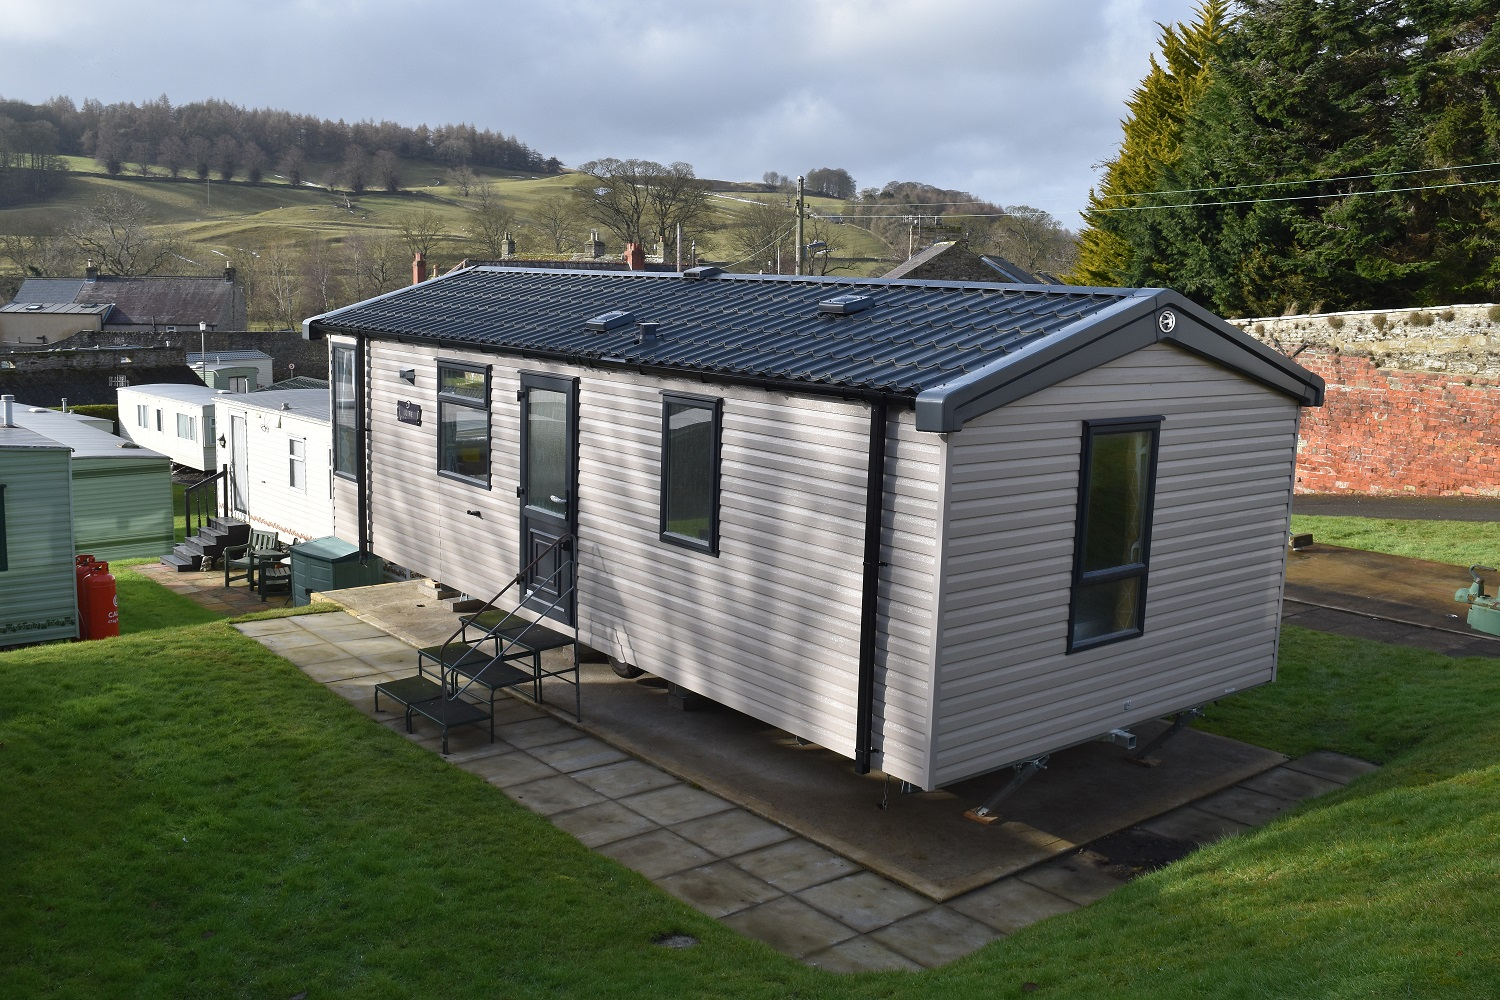 Swift Loire: Static Caravans and Holiday Homes for Sale on Caravan Parks, Stanhope, Durham and Weardale Image 5